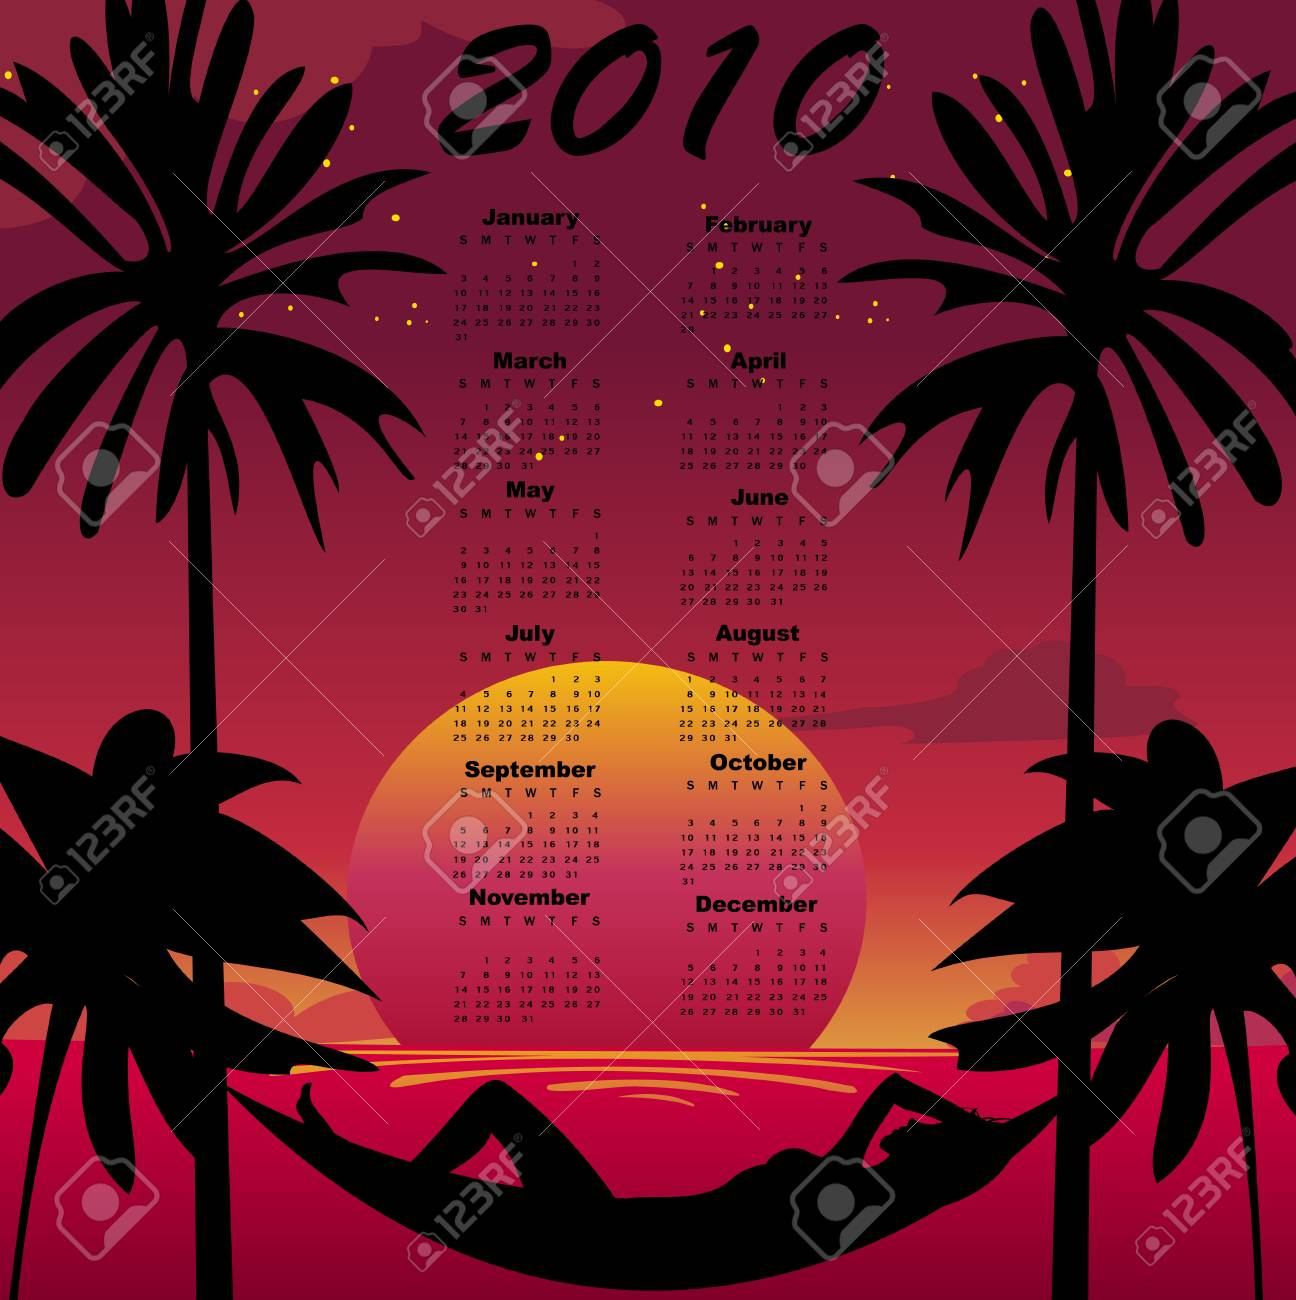 Vector Illustration of stylish design Calendar for 2010 with summer background. Stock Vector - 5861397